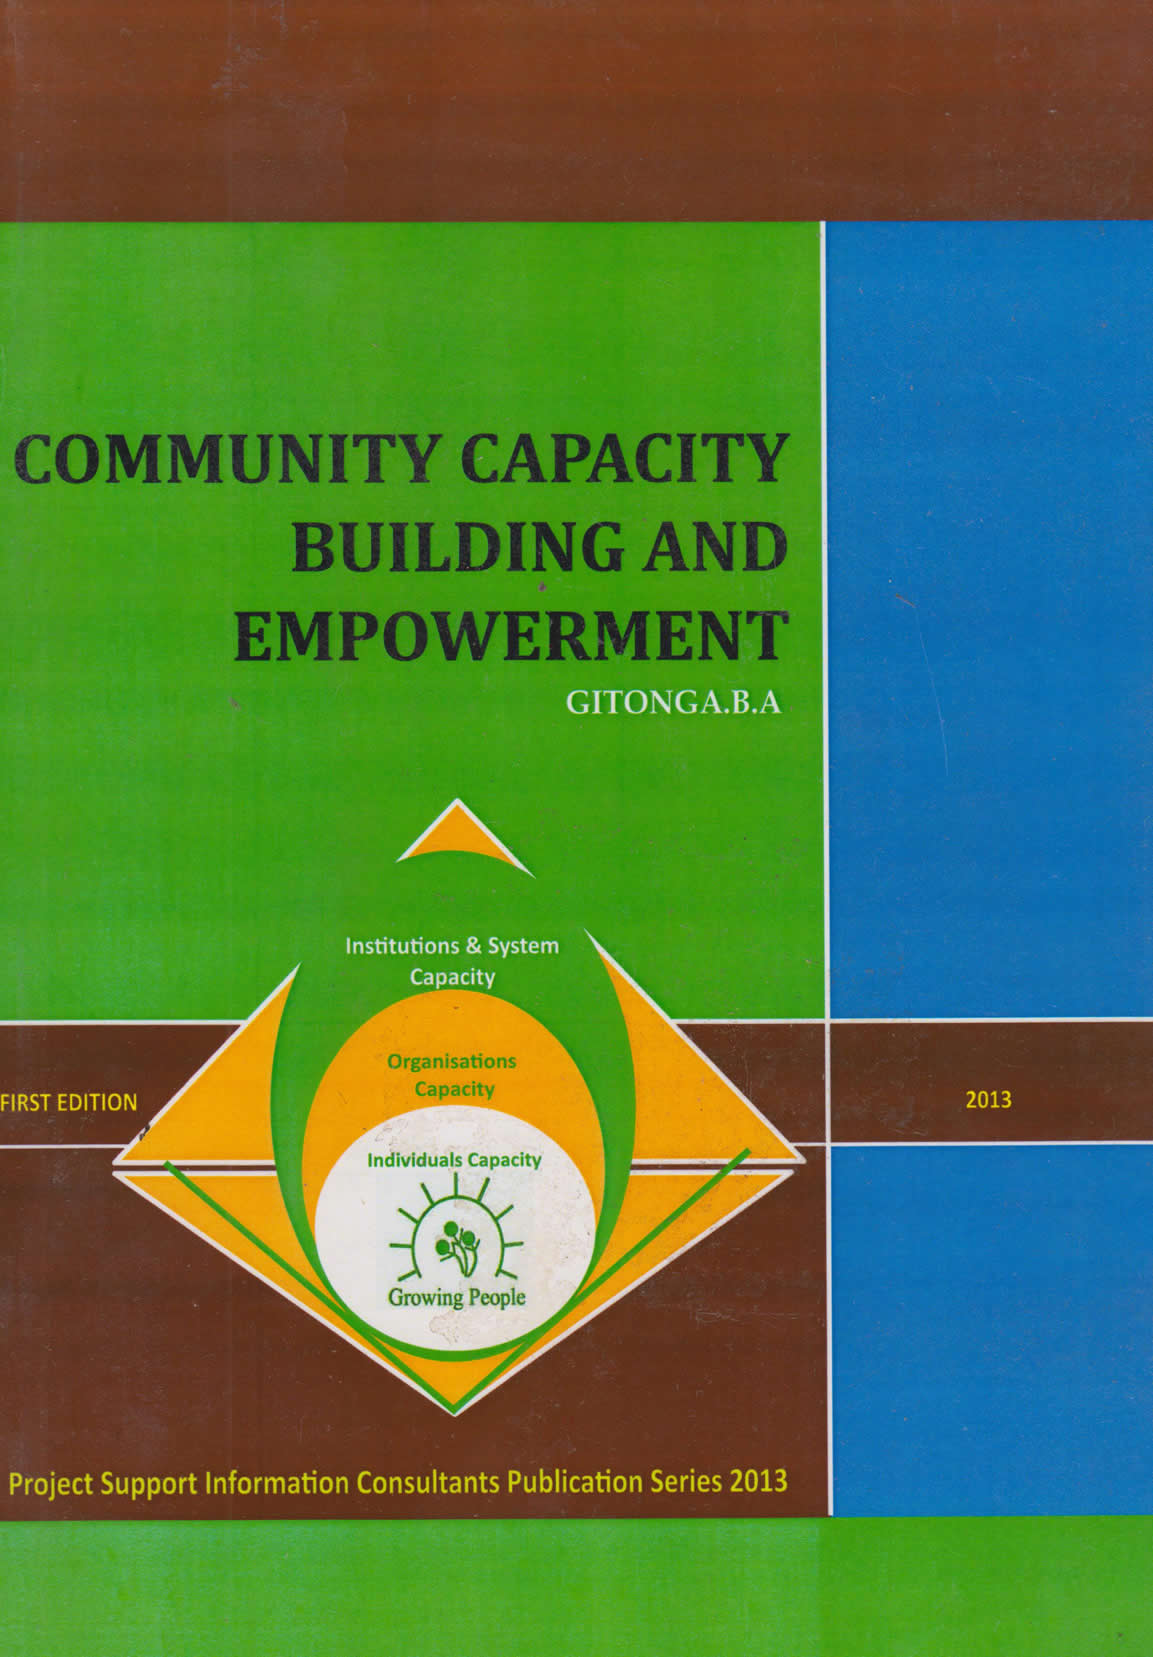 community capacity building and empowerment